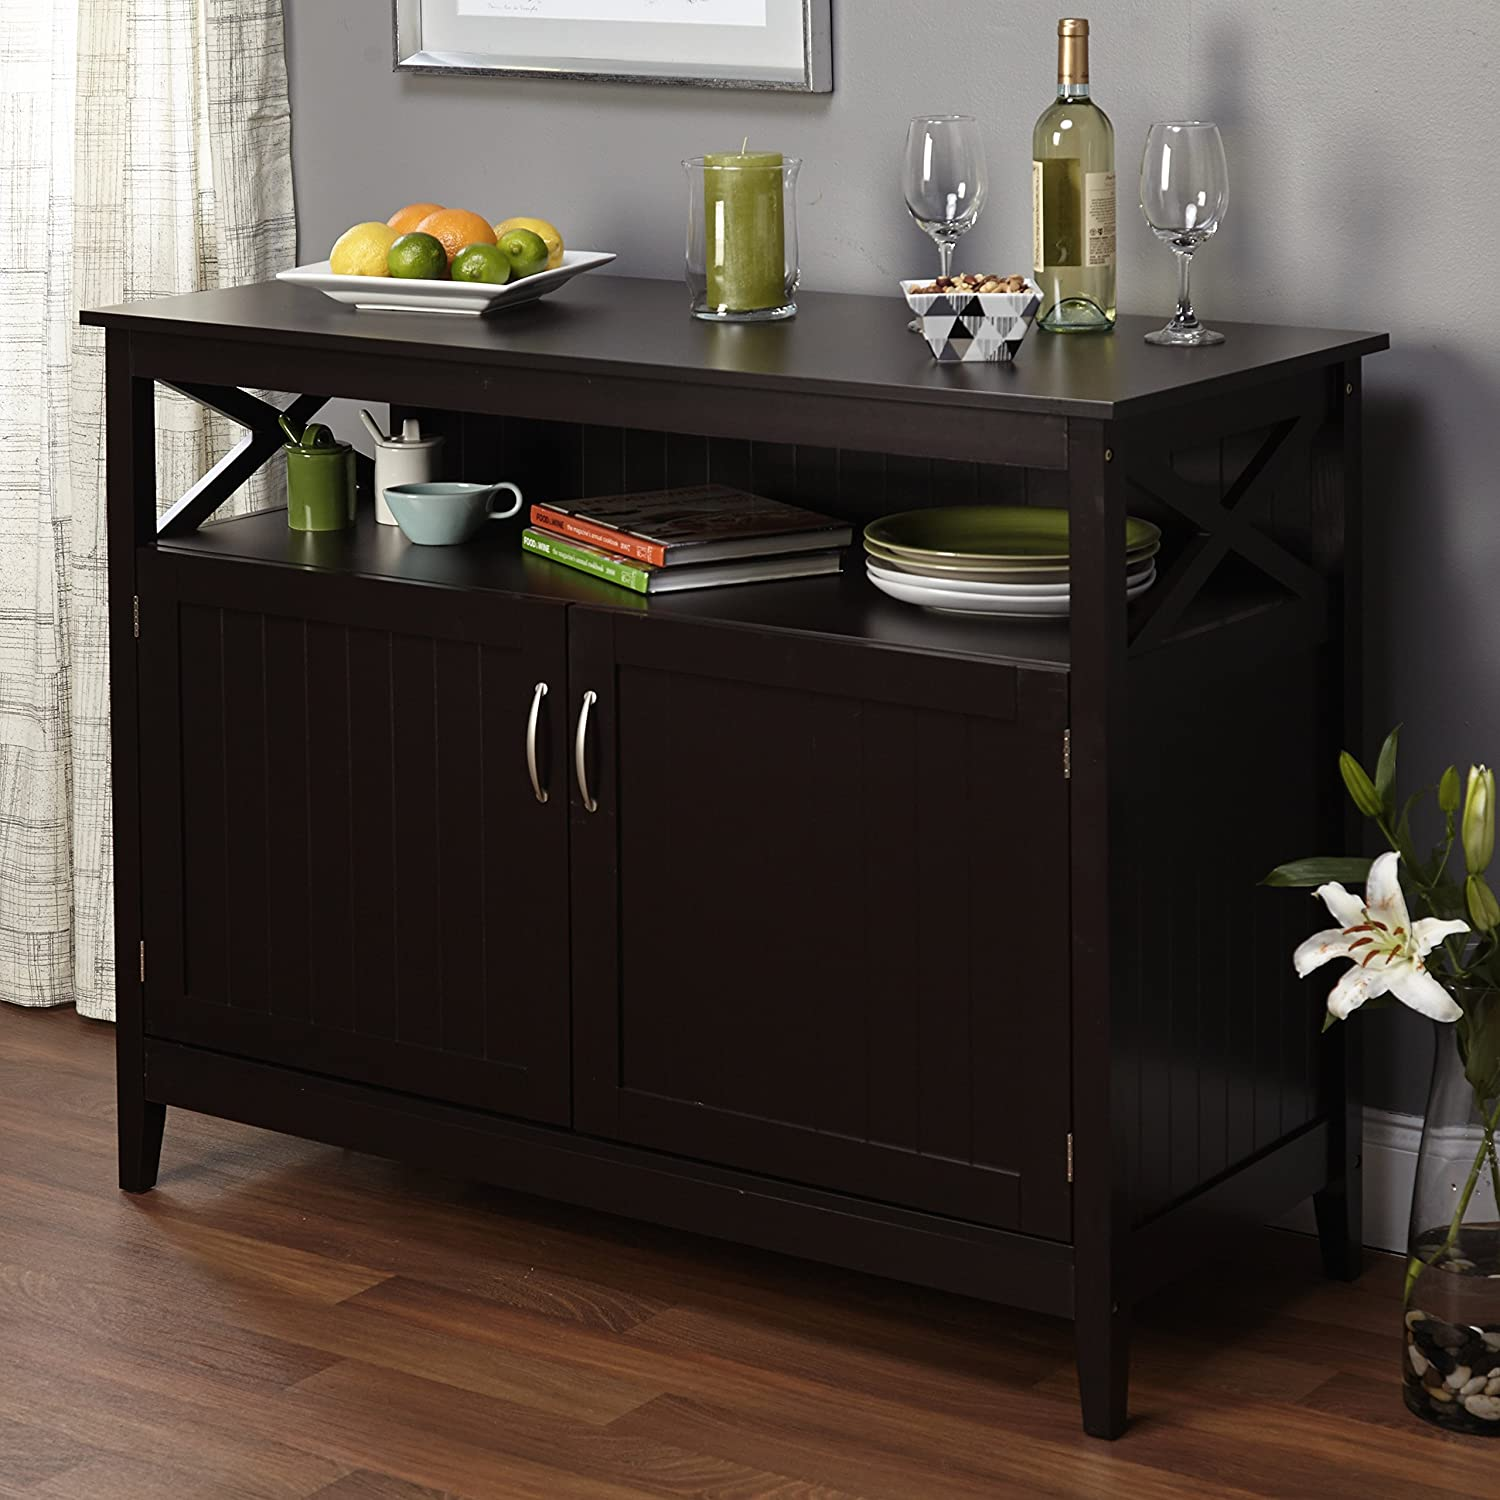 global cherry inflowcomponent storage s inflow technicalissues table p kings sideboard with king brand drawers res console content wood and